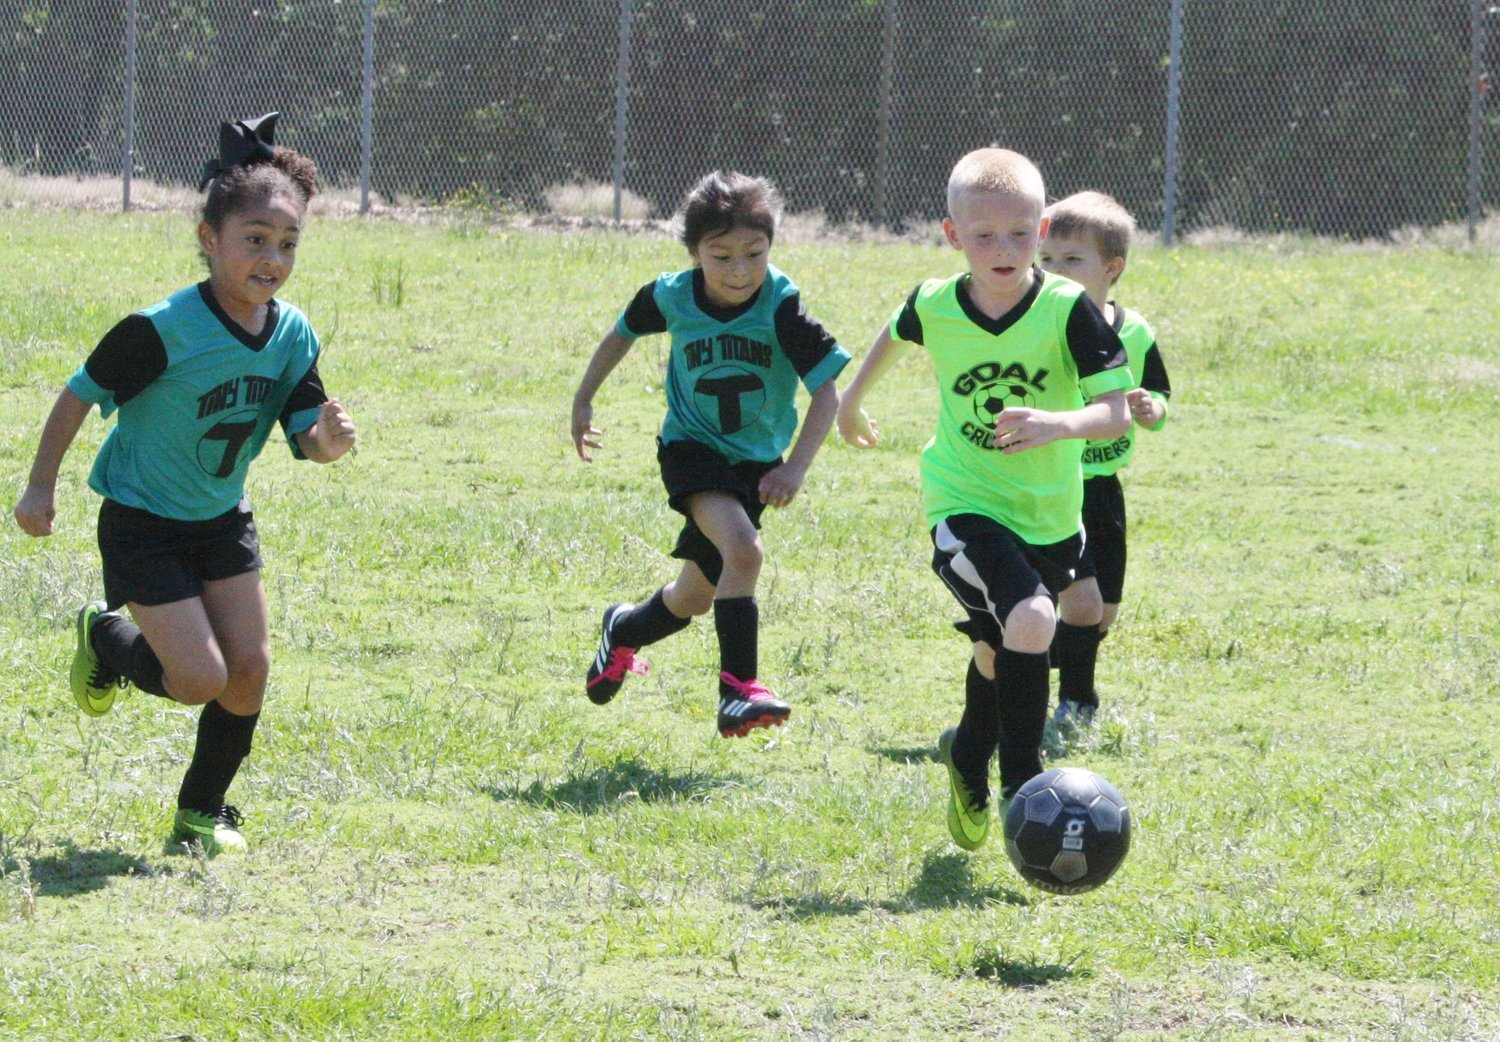 Local youths in hot pursuit of the soccer ball during a Saturday morning game of the Mineola Soccer Association.